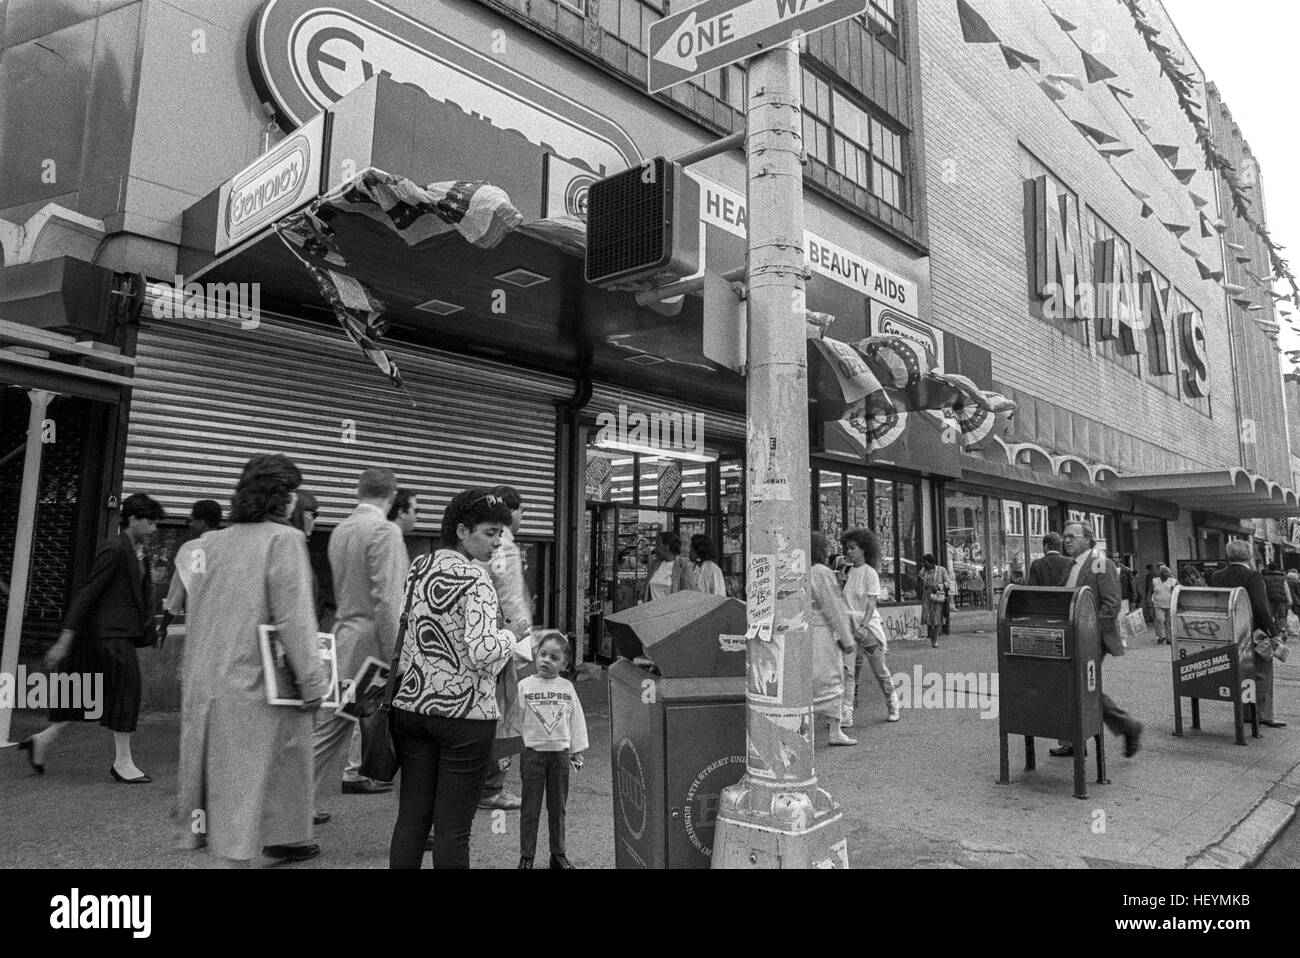 New York, NY - 15 May 1987 - Shoppers outside May's Department store on 14th Street, Union Square ©Stacy Walsh Rosenstock Stock Photo